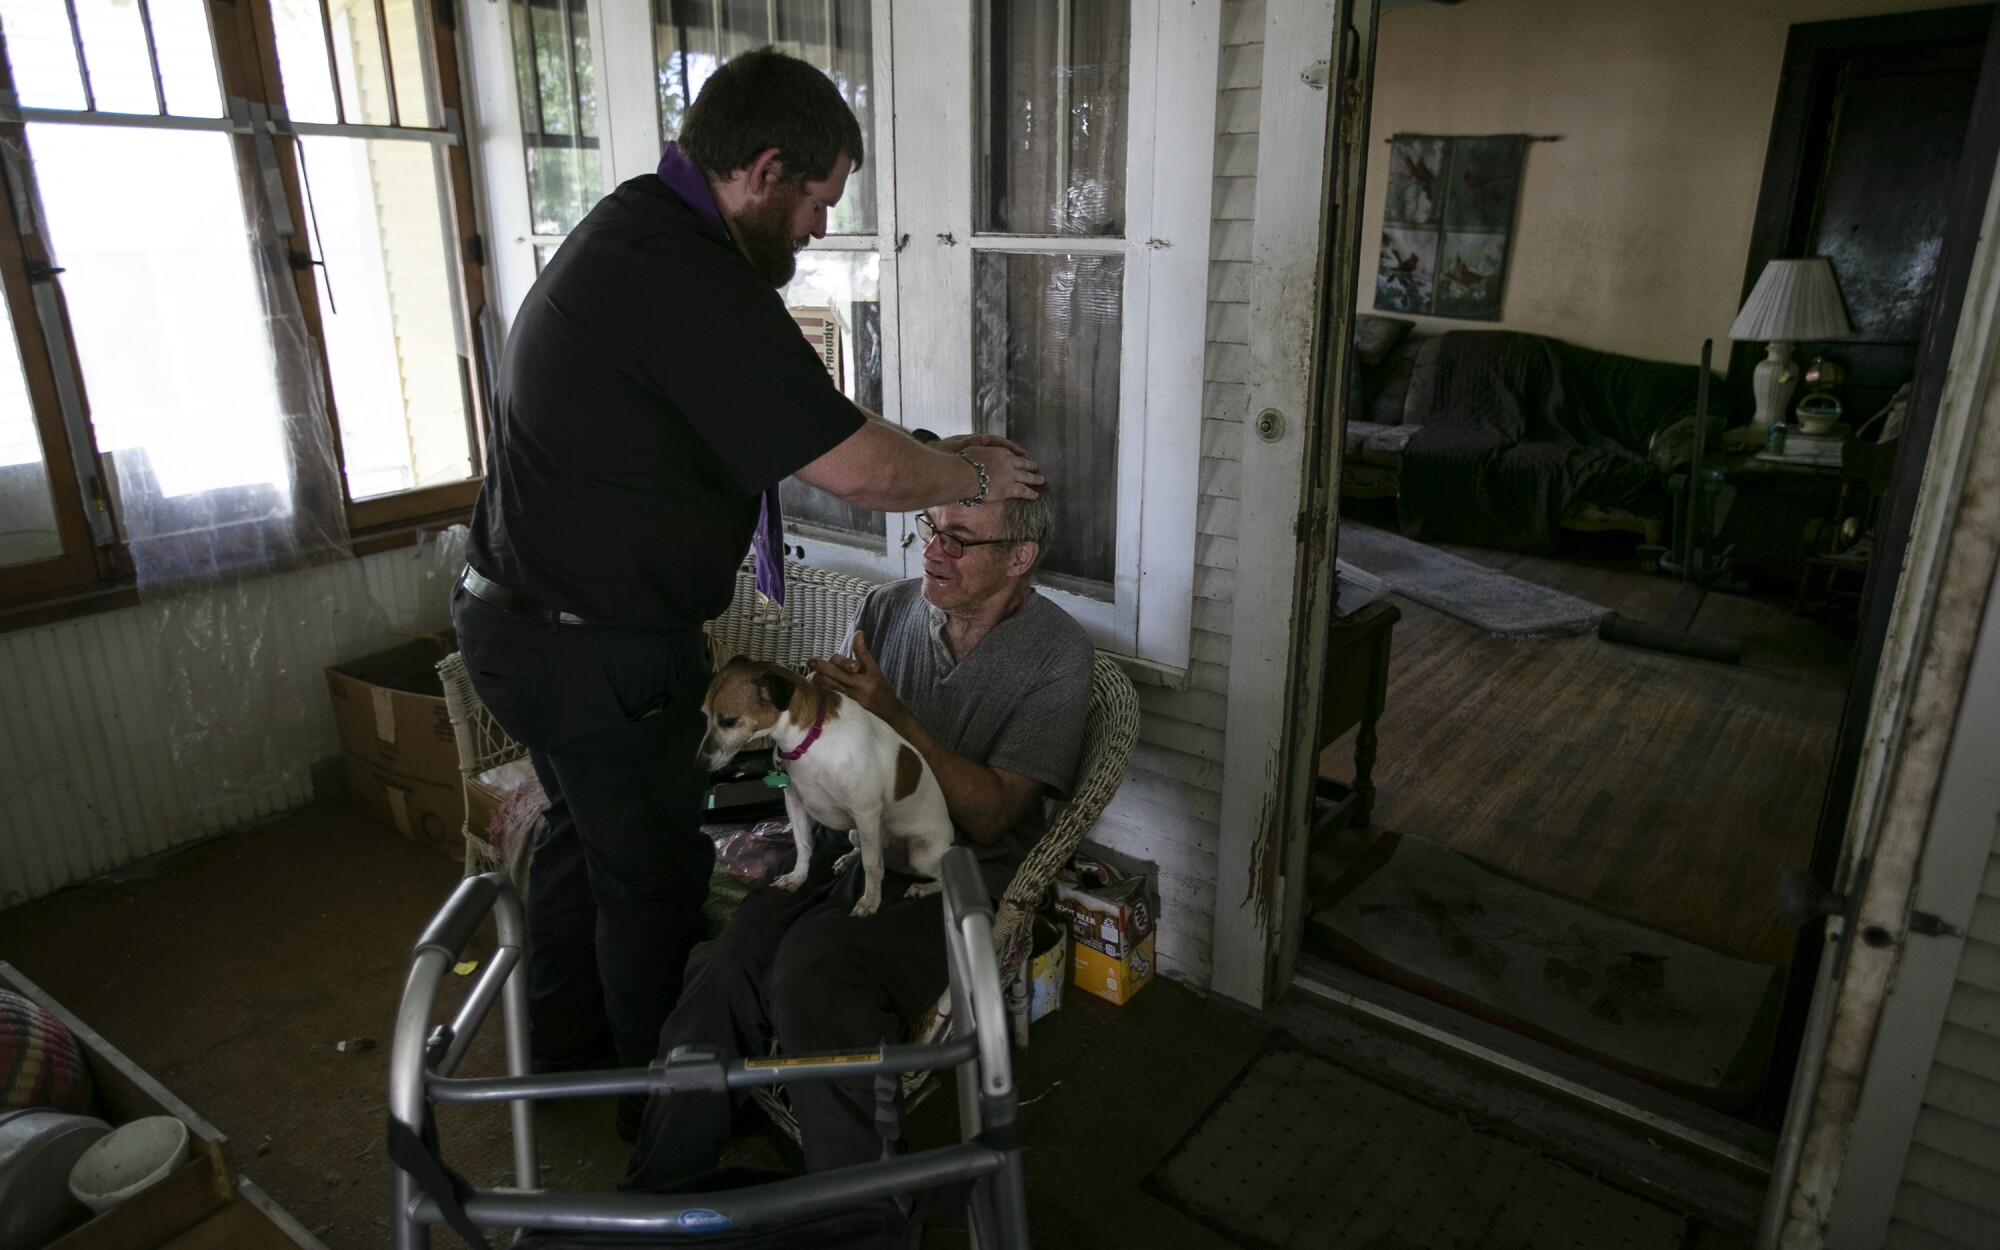 The Rev. Kristopher Cowles blesses Doug Van Loh, 62, at his home as his dog Sadie stands by.